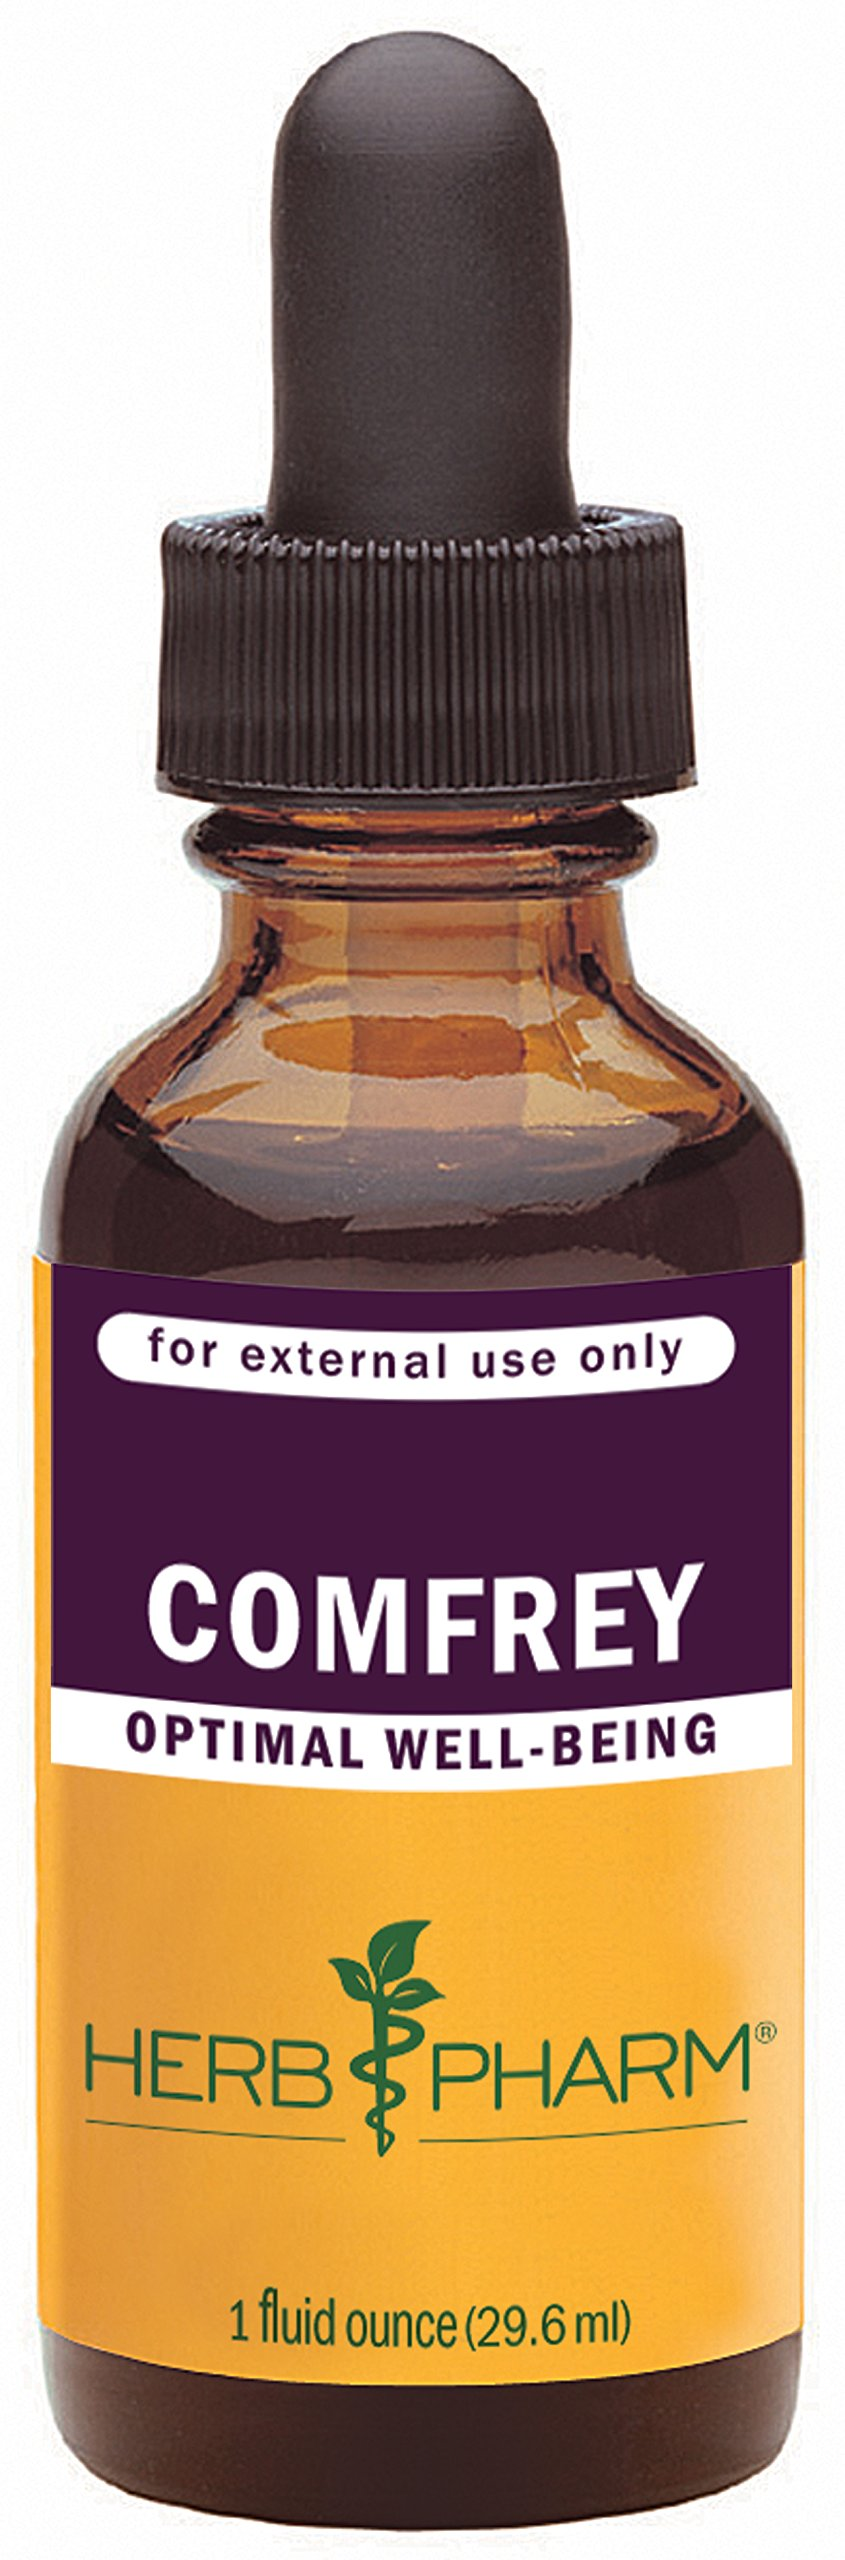 Herb Pharm Certified Organic Comfrey Extract - 1 Ounce